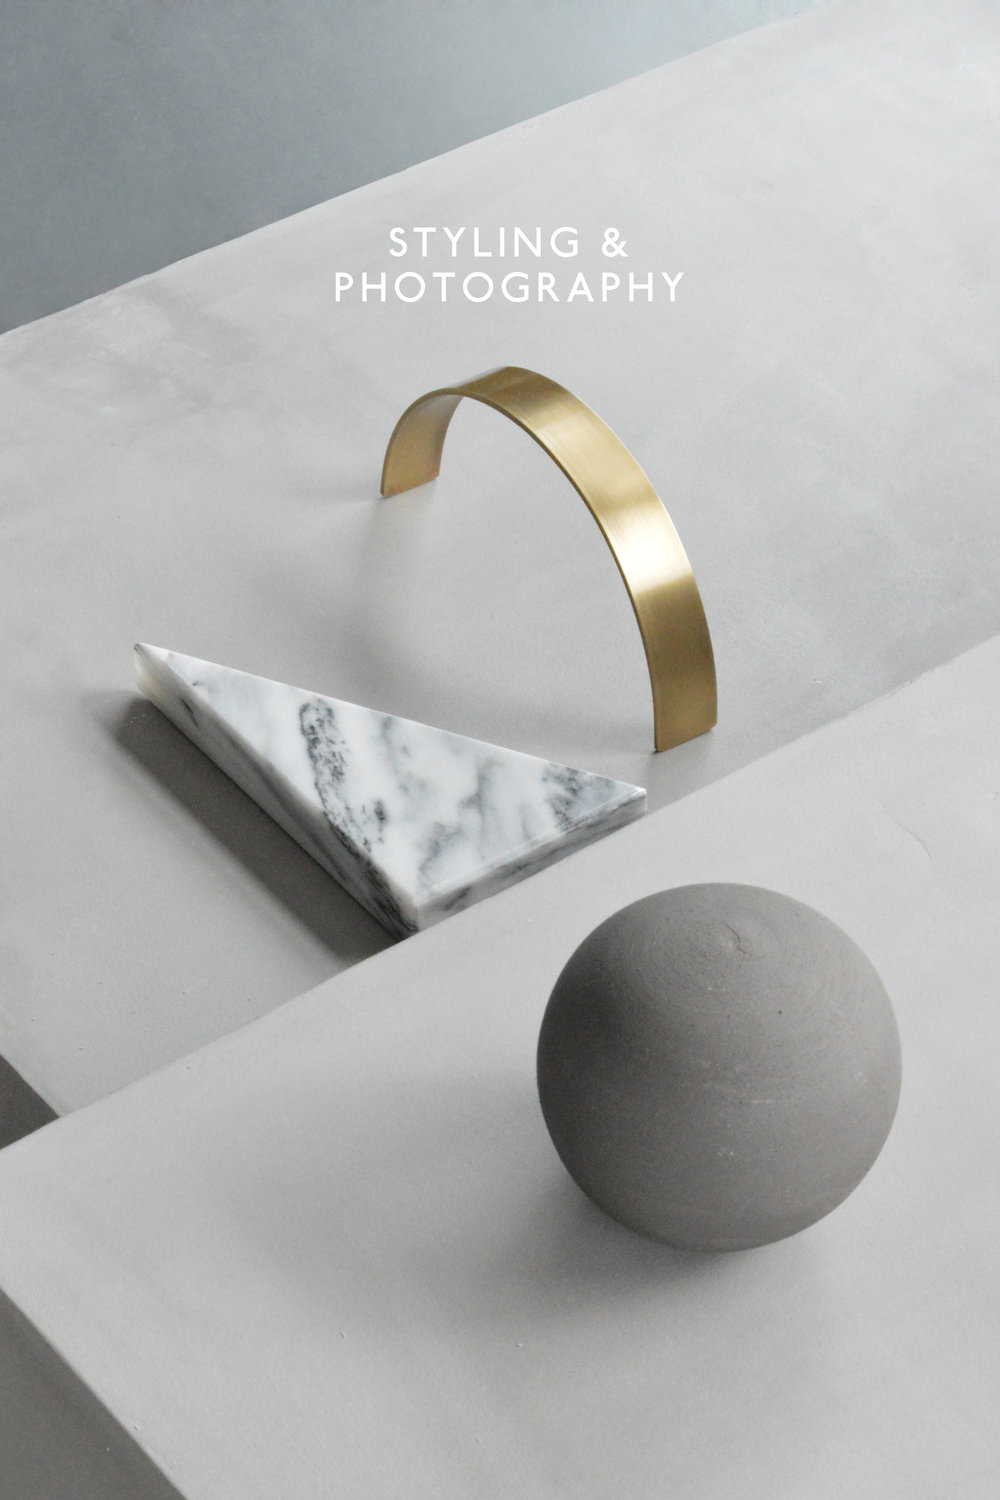 photography & styling